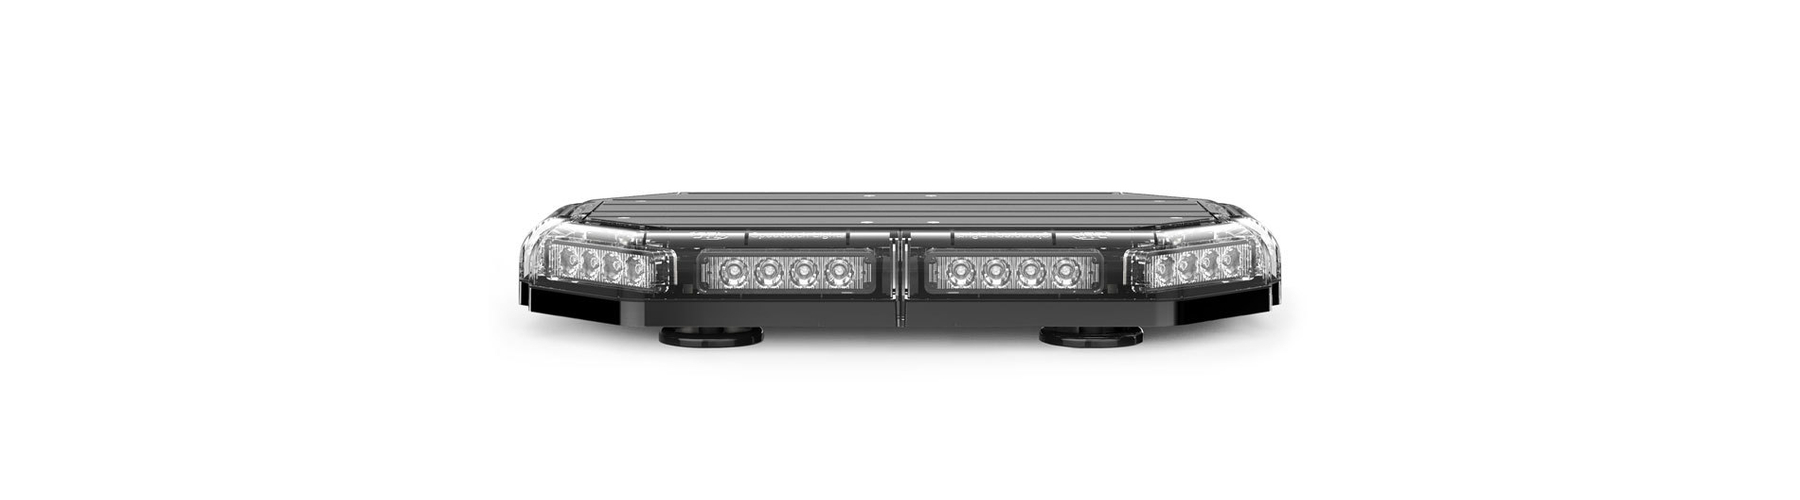 LED POLICE LIGHT BAR, EMERGENCY VEHICLE STROBE LIGHT BAR WARNING LIGHTS, TOW TRUCK LIGHT BAR STROBE LIGHTS